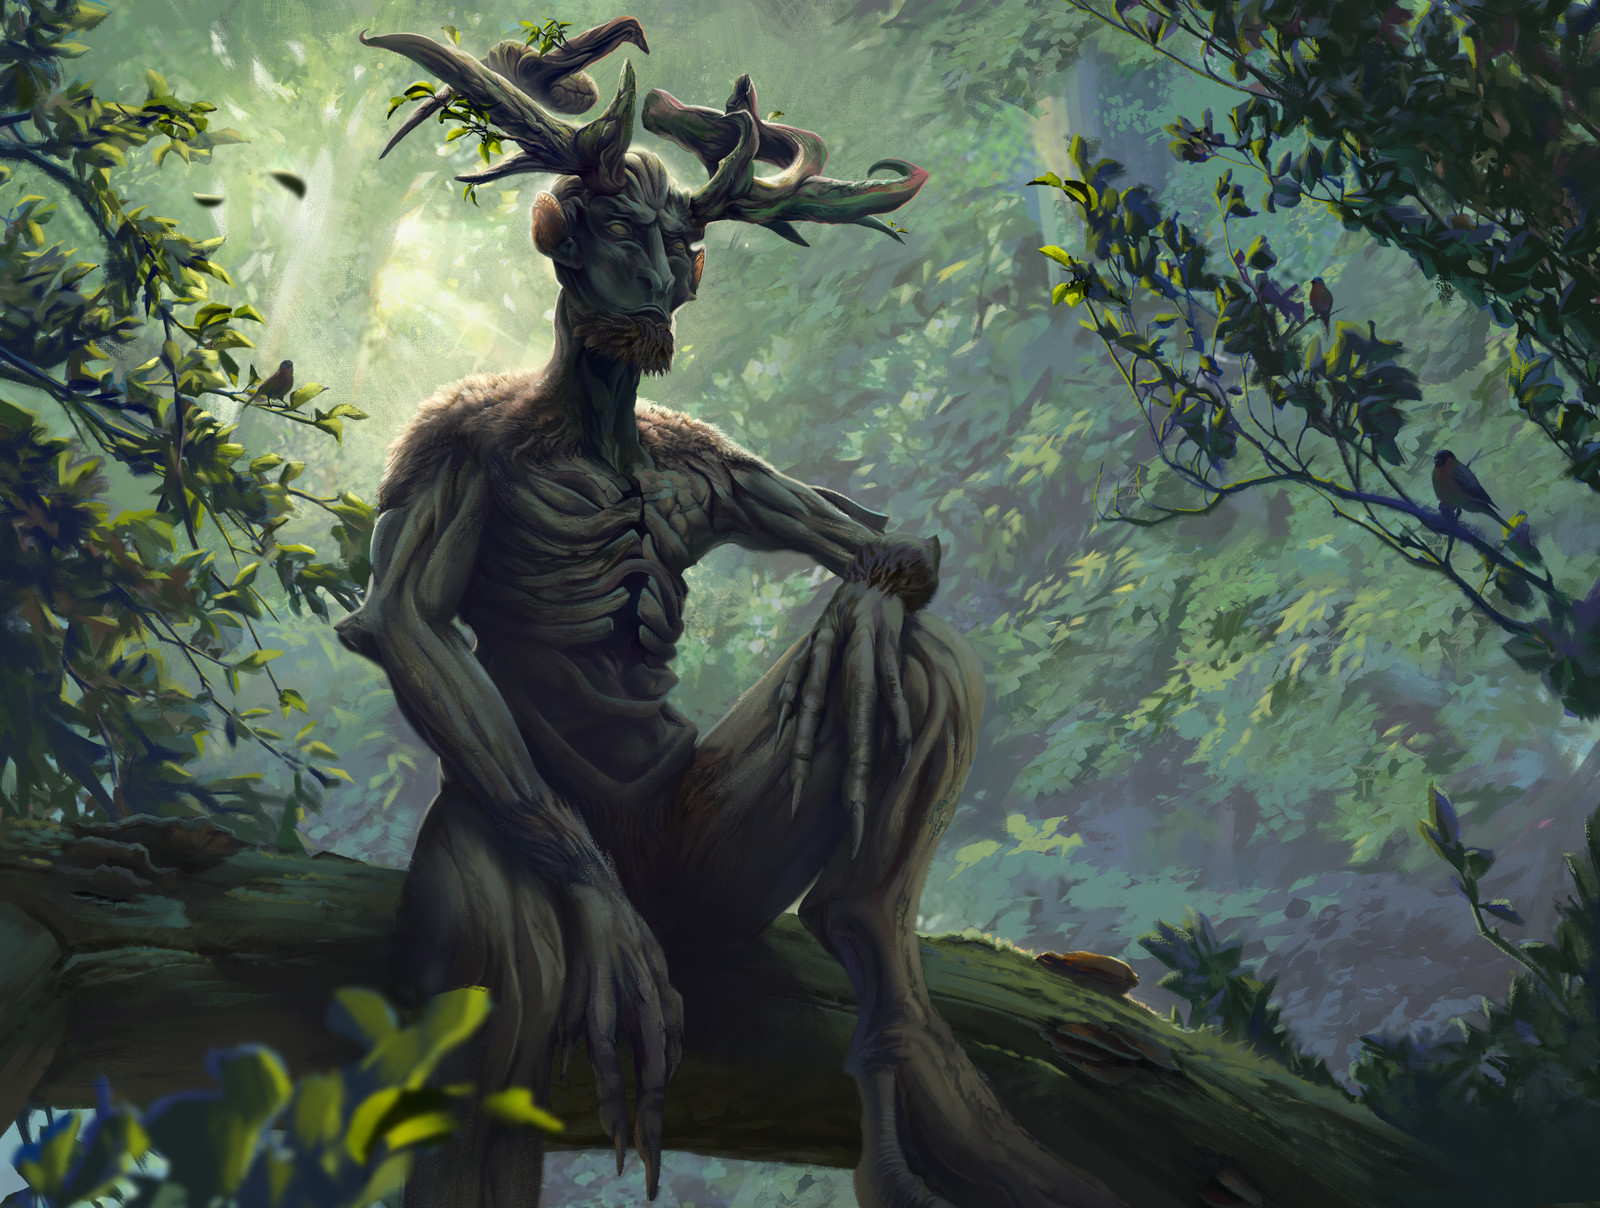 The Leshy